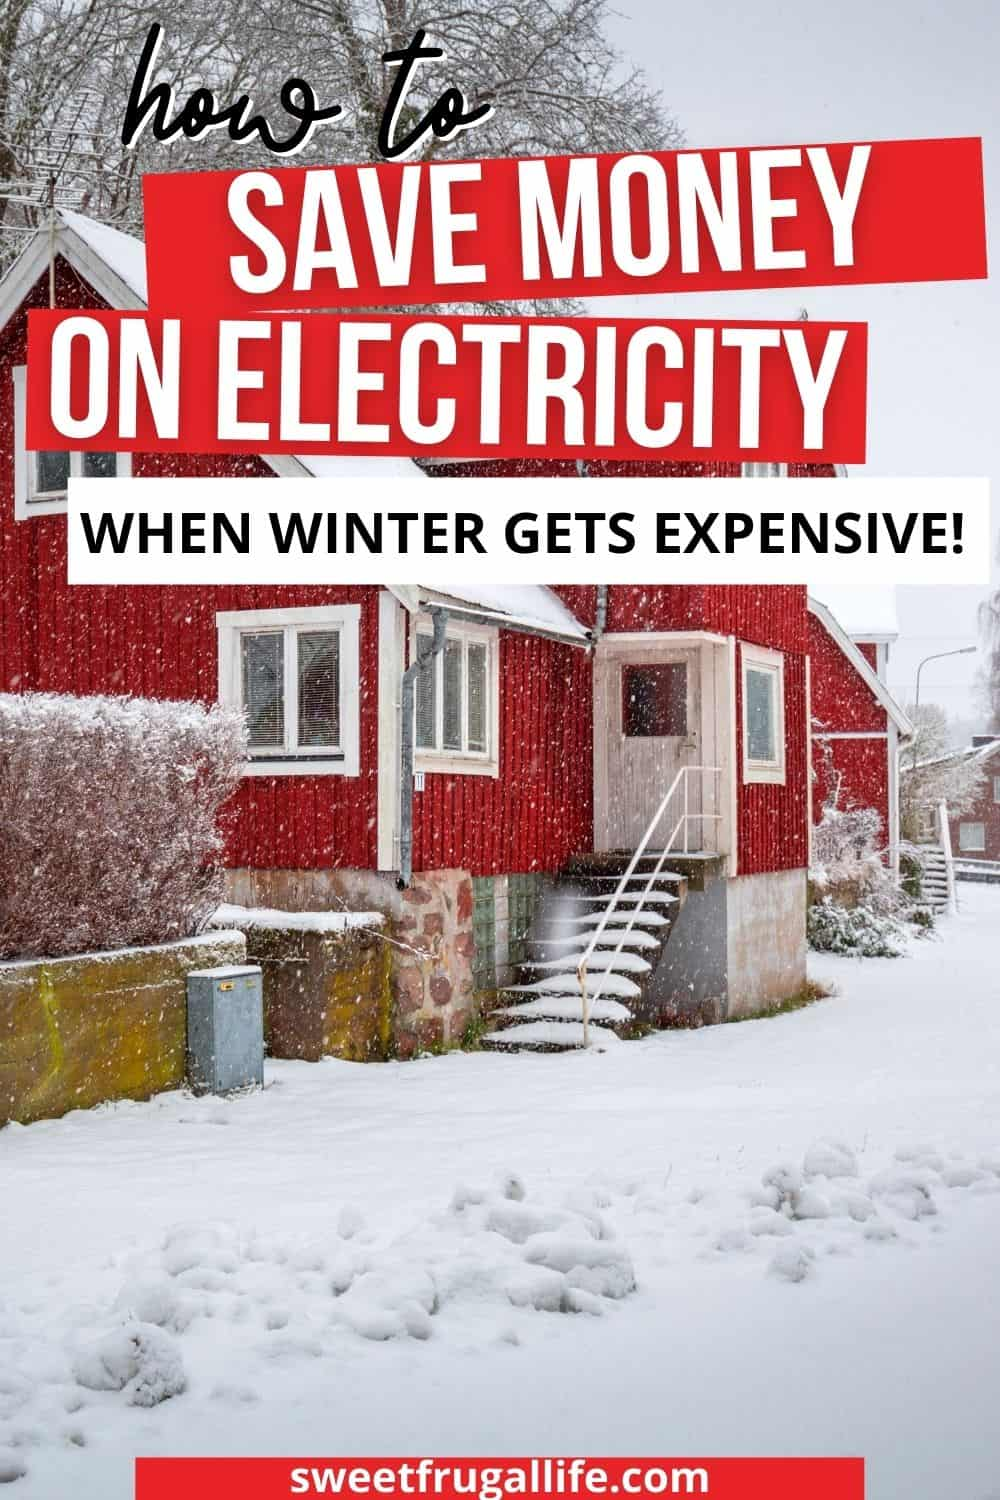 save money electricity - money saving tips in winter